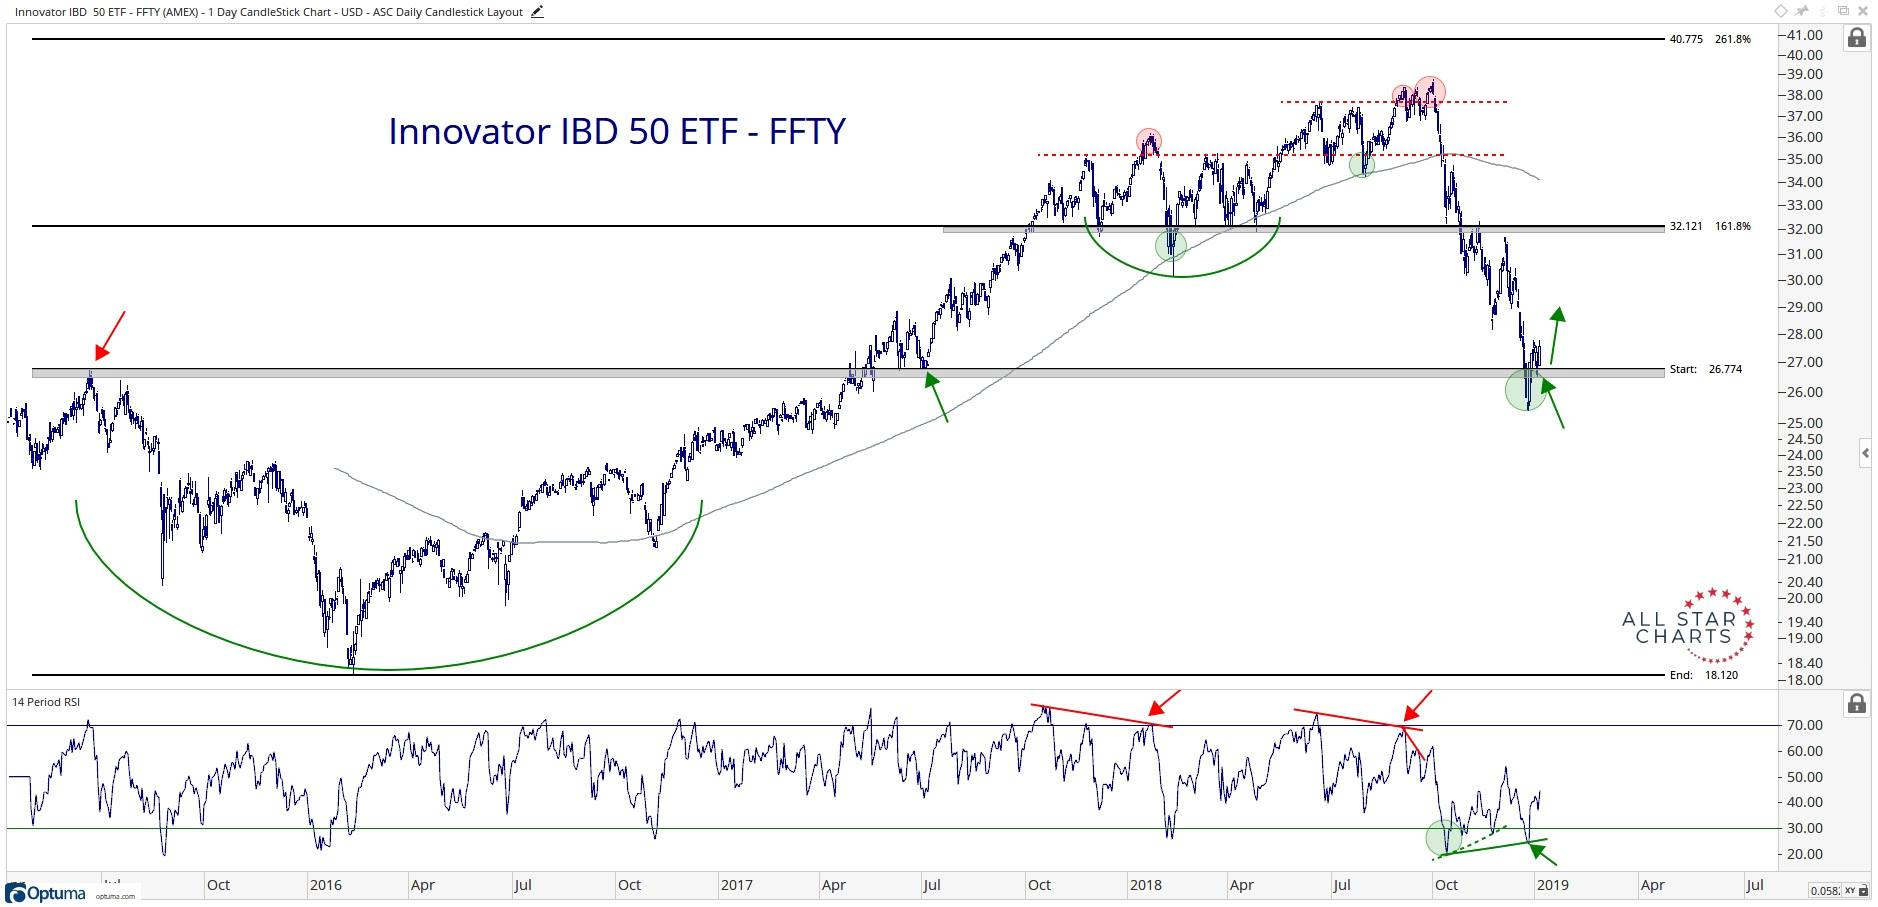 hight resolution of technical chart showing the performance of the innovator ibd 50 etf ffty